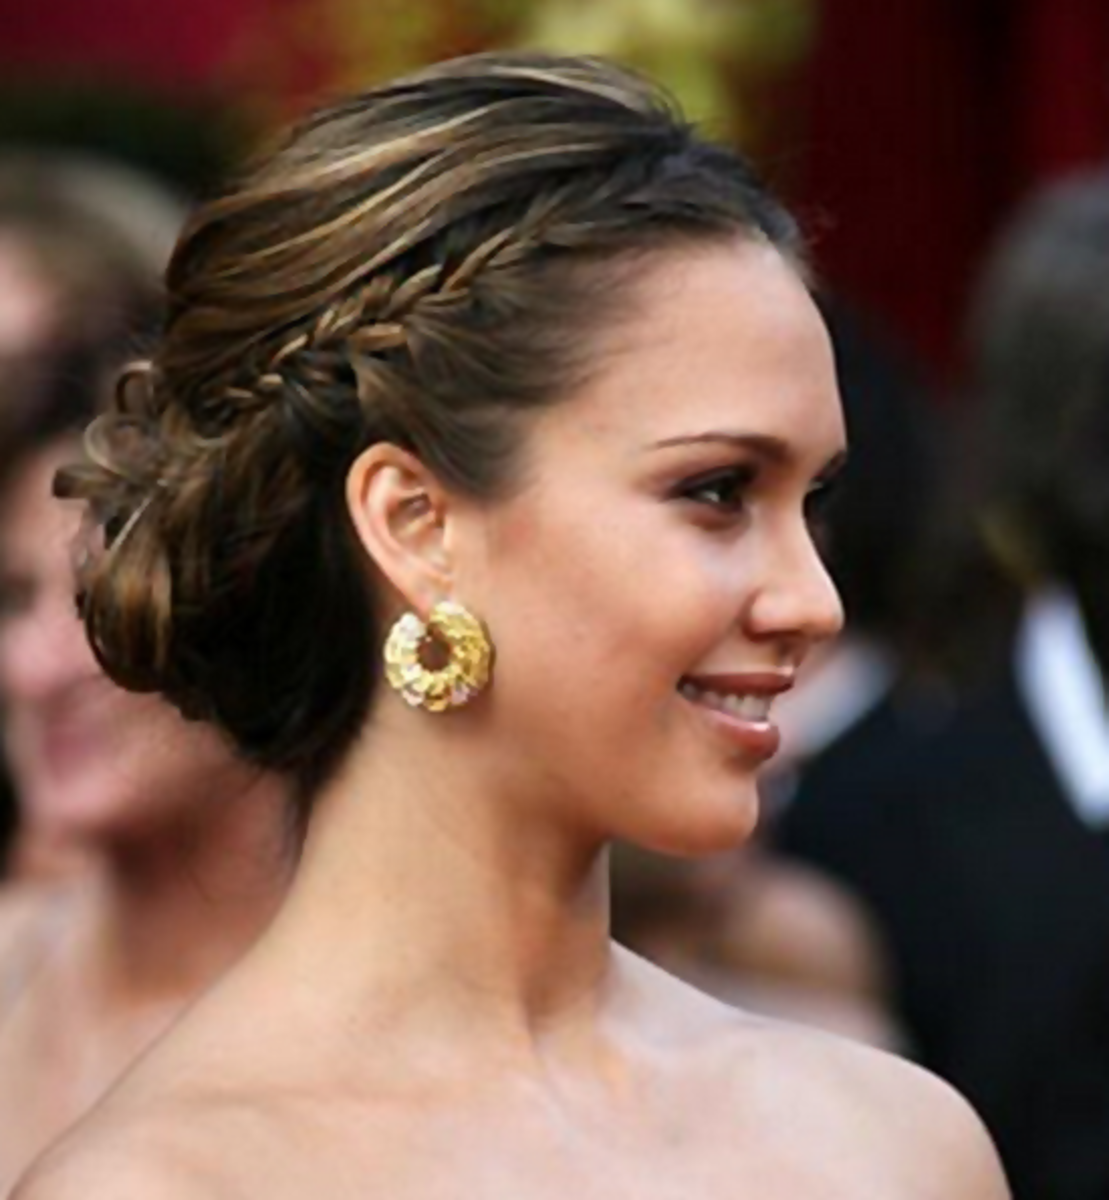 Jessica Alba - 2013 Braided Hairstyles - Fun Braids and Braided Updo Hair Styles